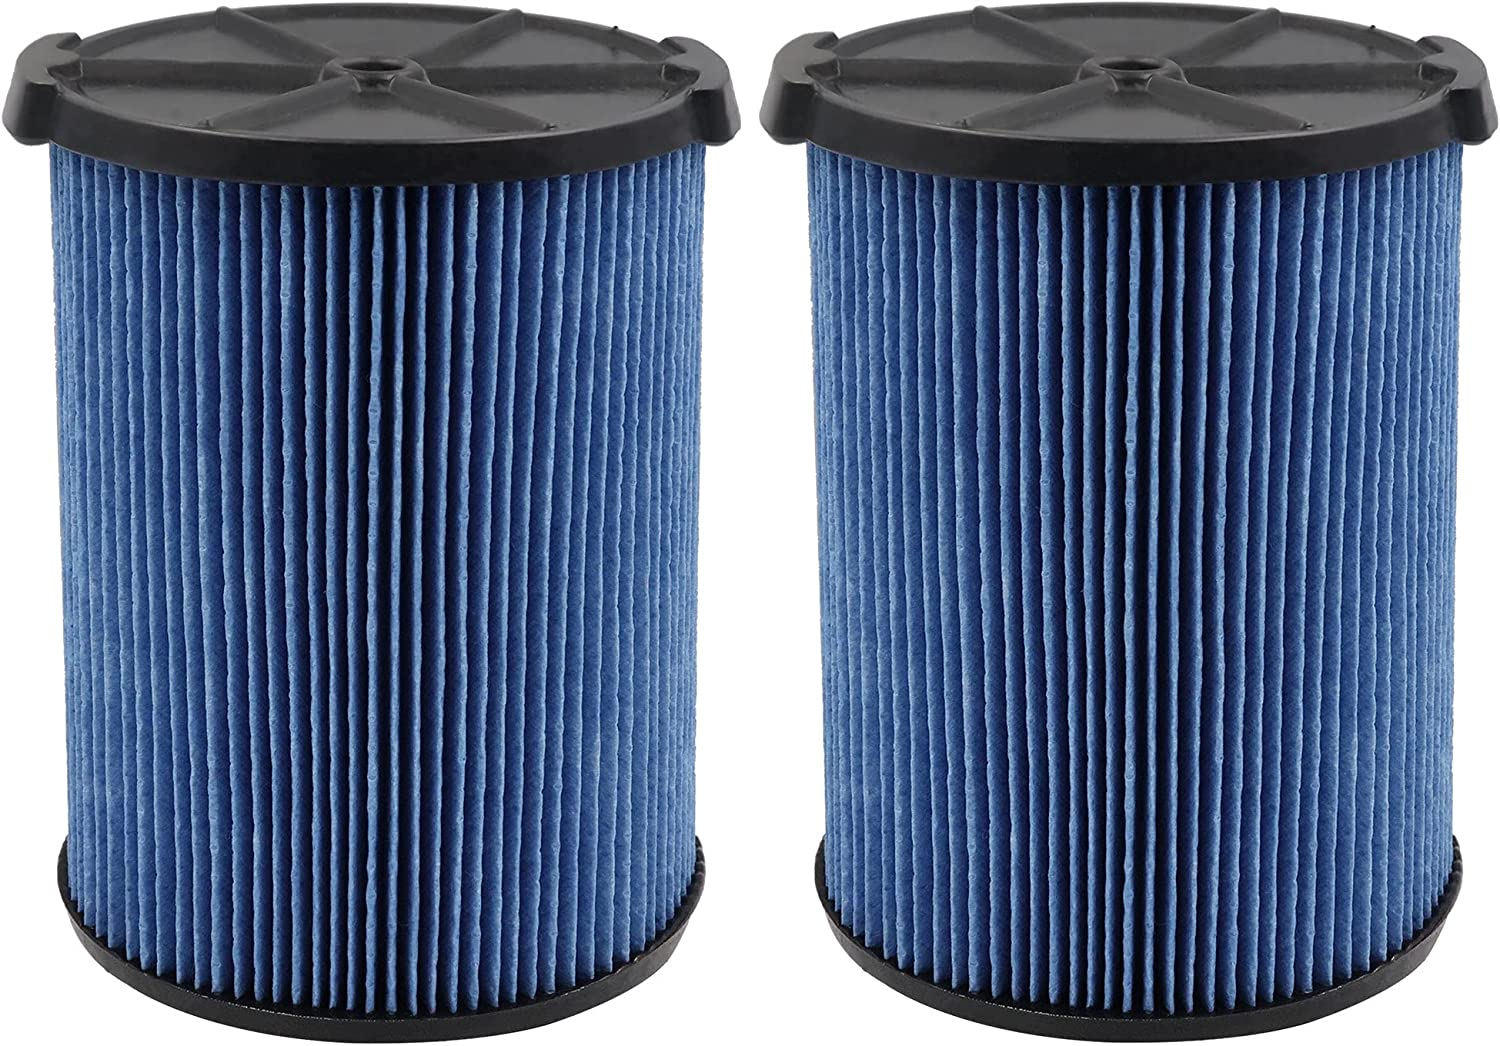 VF5000 Replacement Filter 3-Layer Pleated Paper Vacuum Filter Fits for Ridgid 5-20 Gallon Wet Dry Vacuums,2 Pack